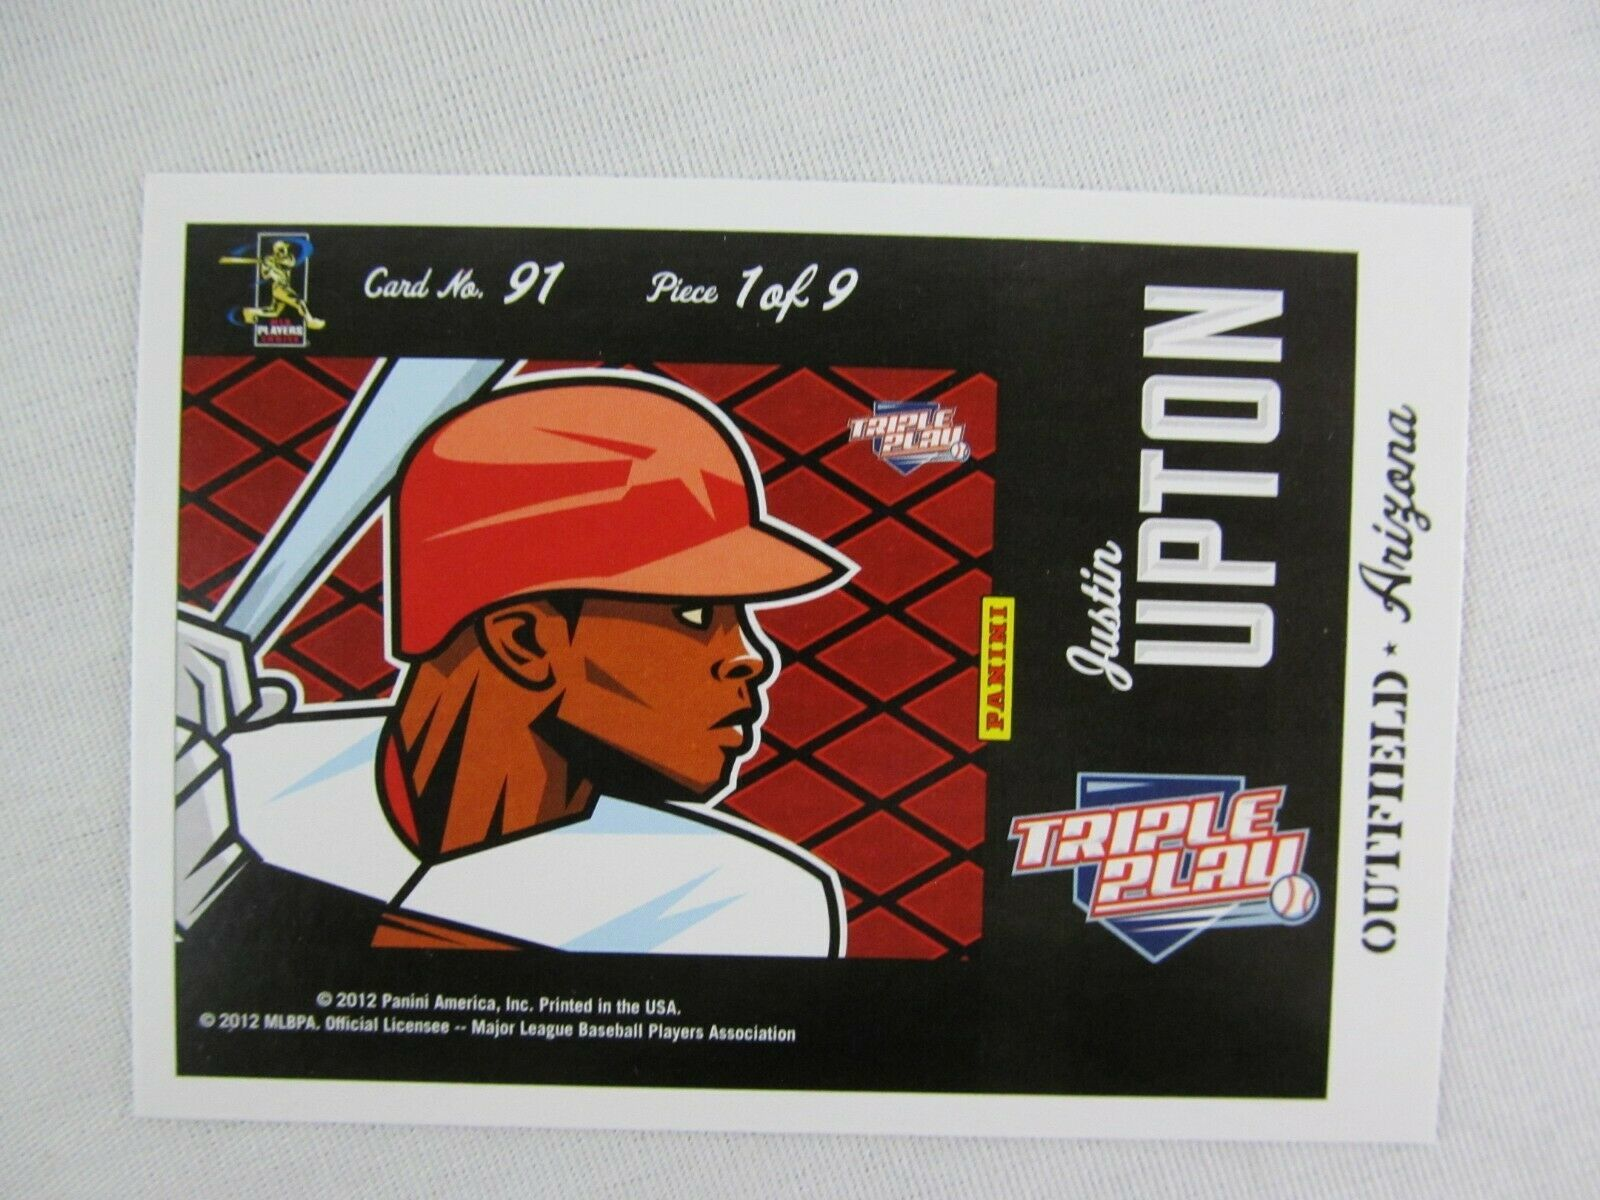 Primary image for Justin Upton California Angels Triple Play Puzzle 2012 Panini Baseball Card 91